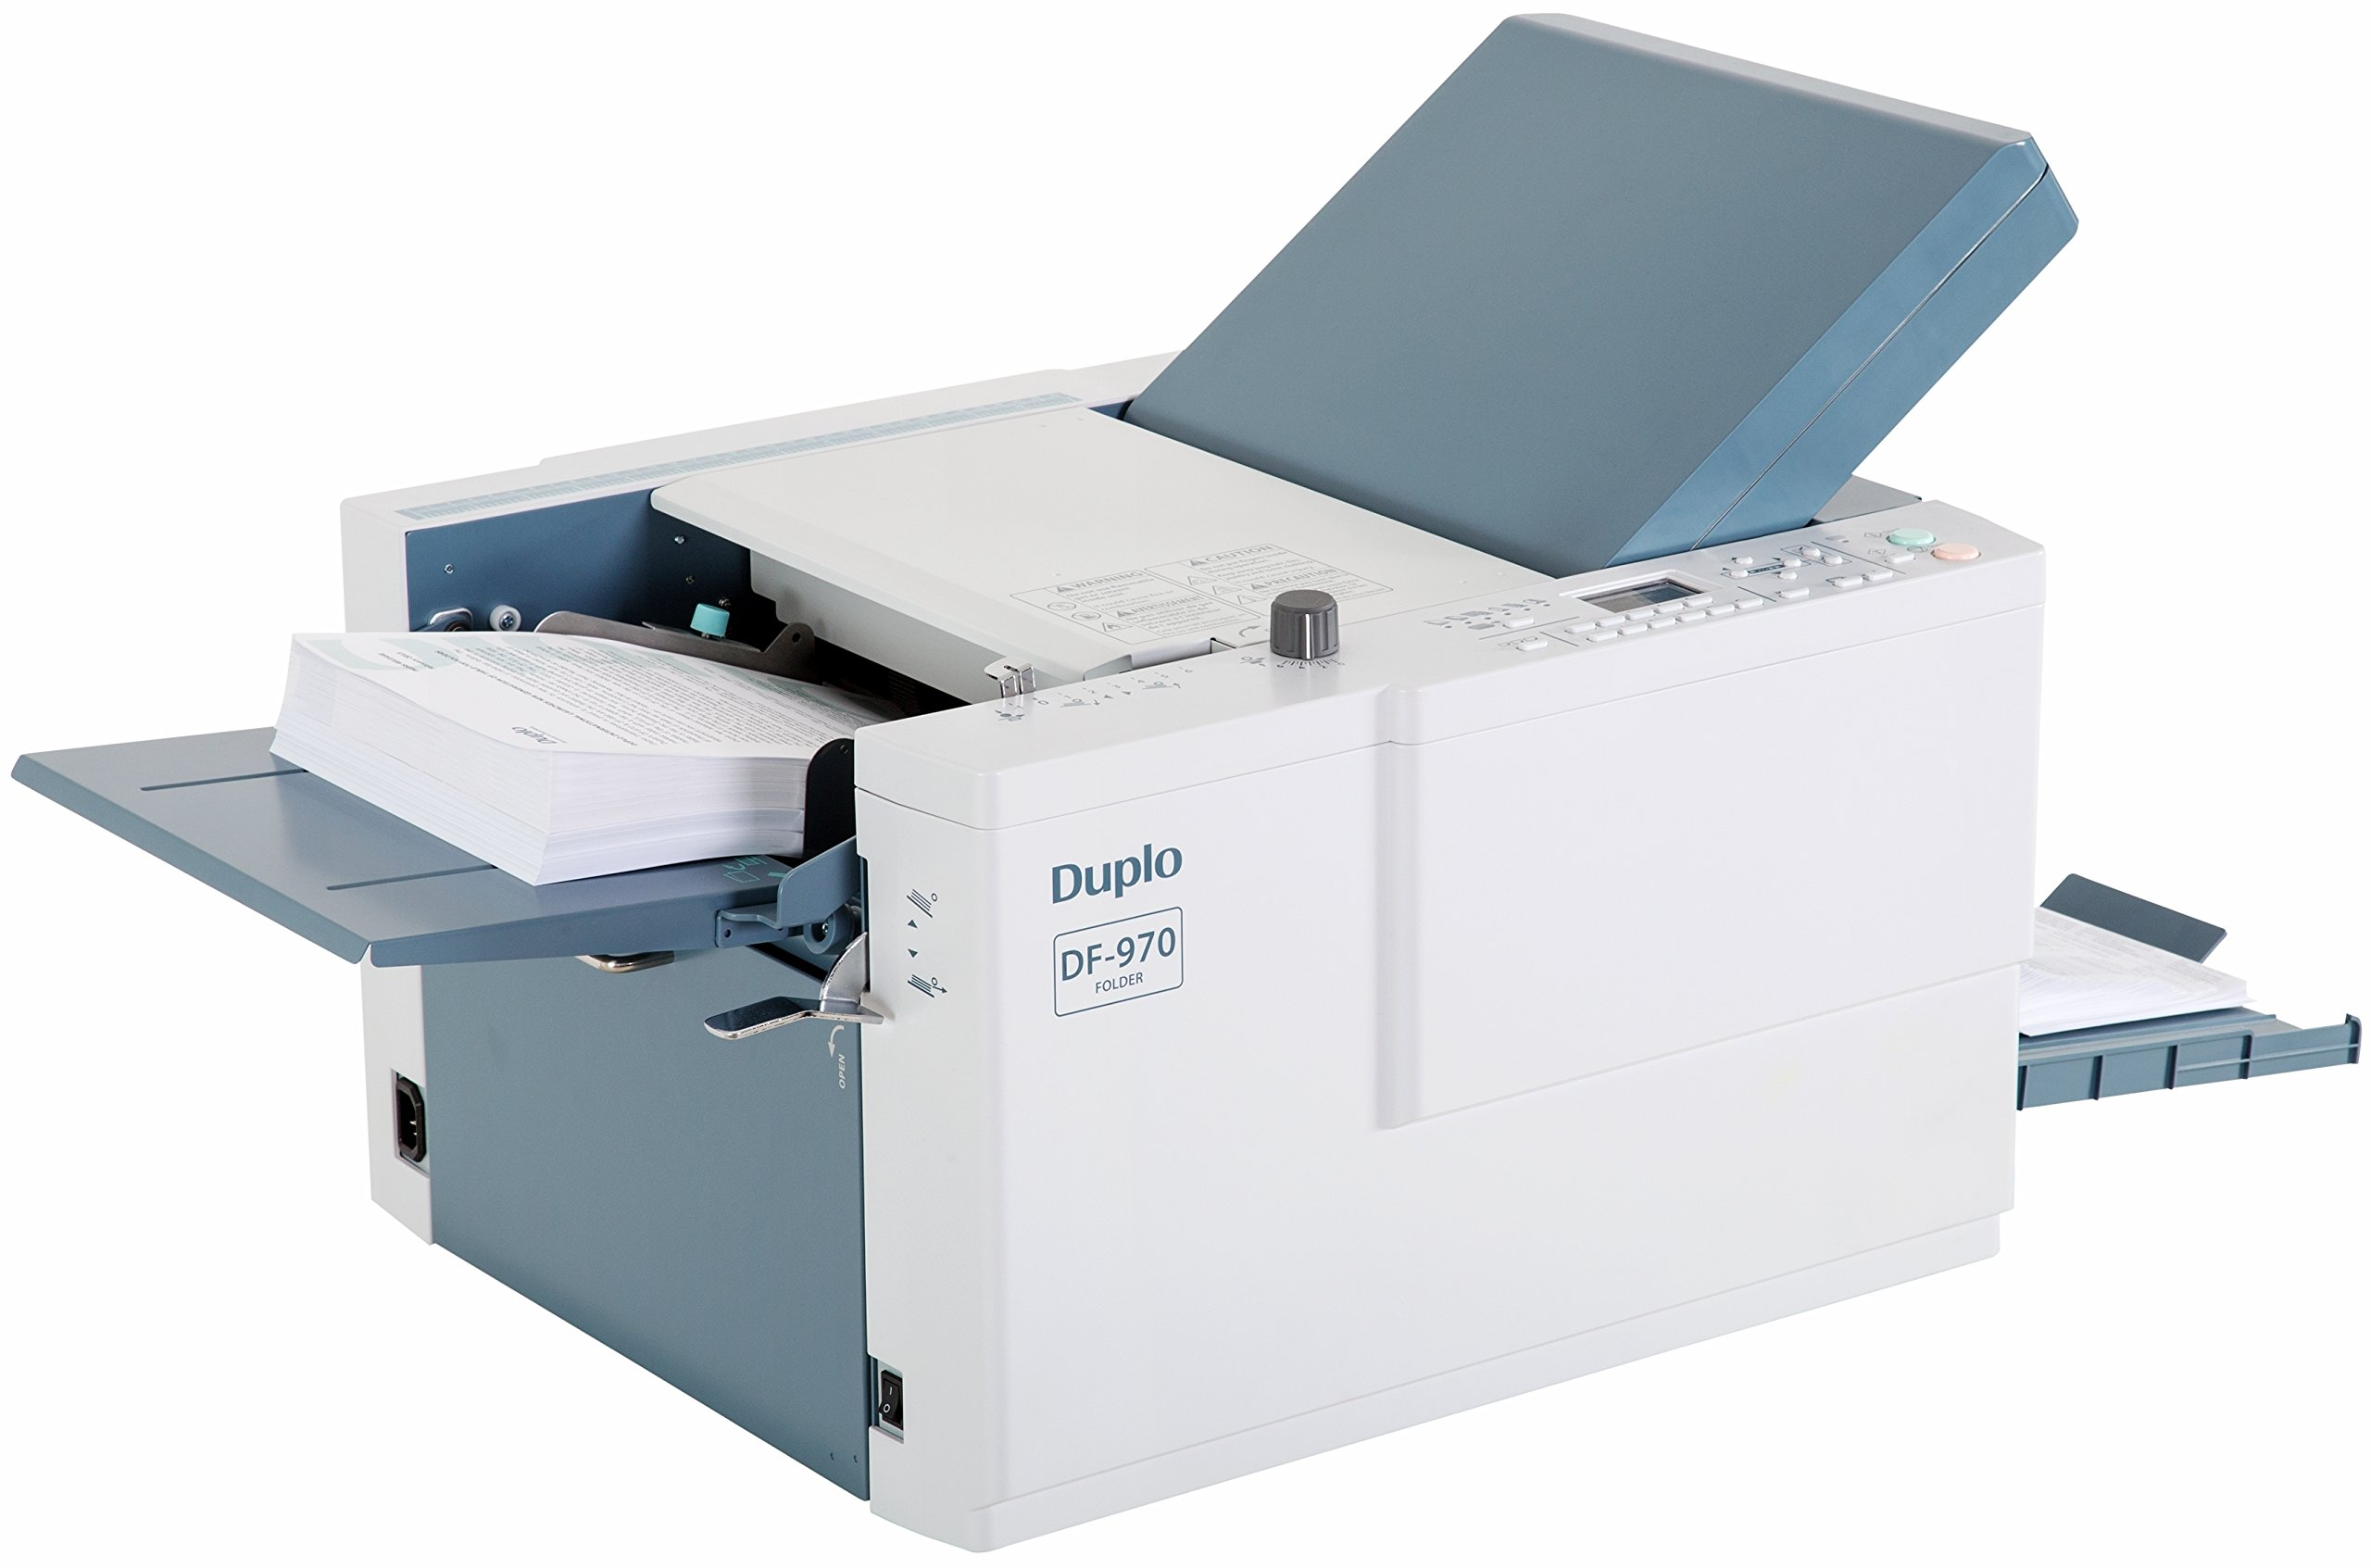 Duplo DF-970 Automatic Paper Folder, 3'' x 52 - 12'' x 18'' Paper Size, 52.3 - 157 gsm Paper Weight, Up to 500 sheets 64 gsm Feeding Tray Capacity, High speed folding up to 242 sheets per minute